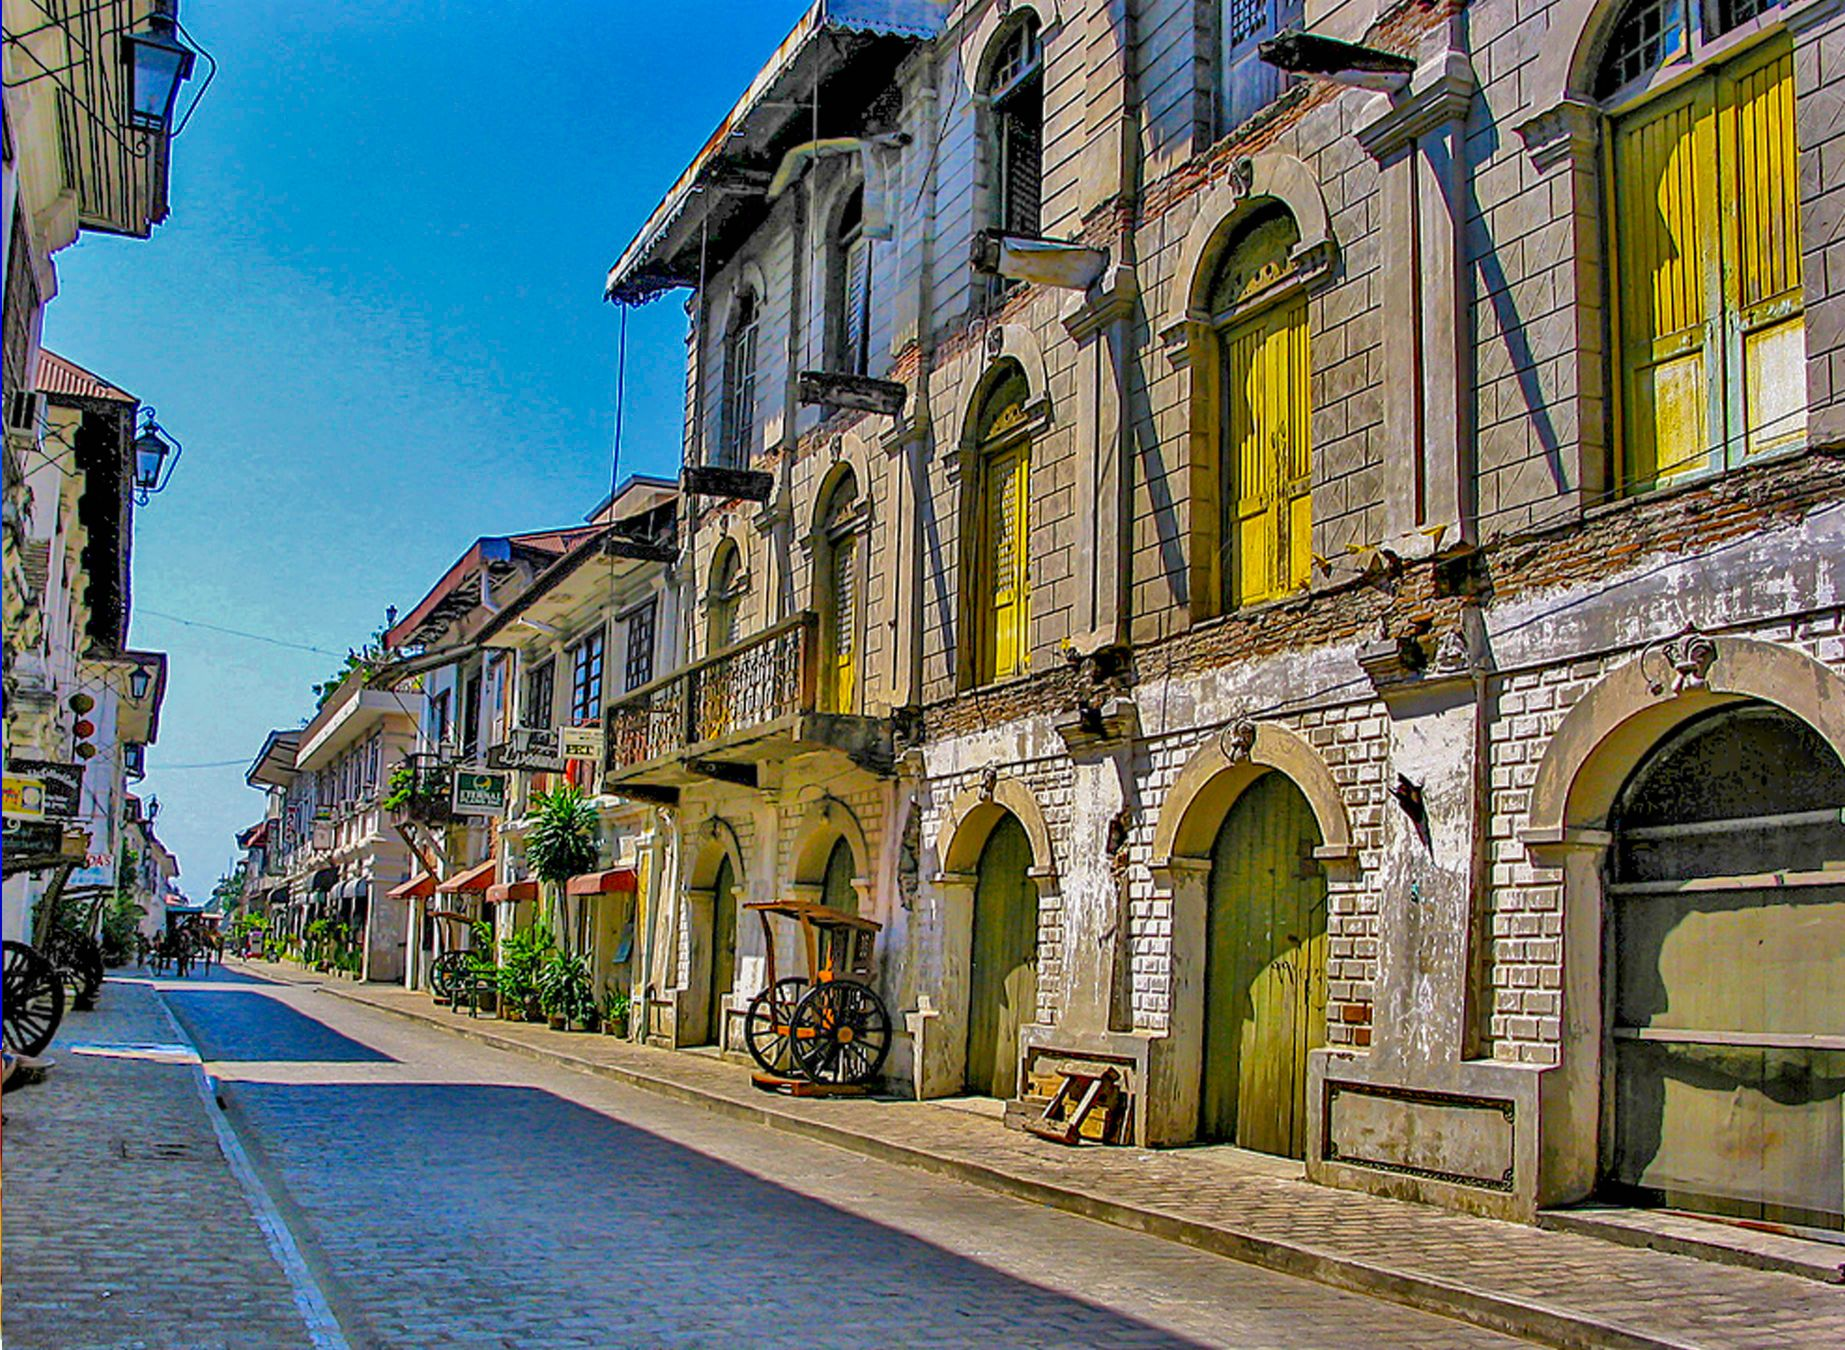 Facade of an old Spanish colonial house in Vigan City, one of the most amazing places to visit in the Philippines